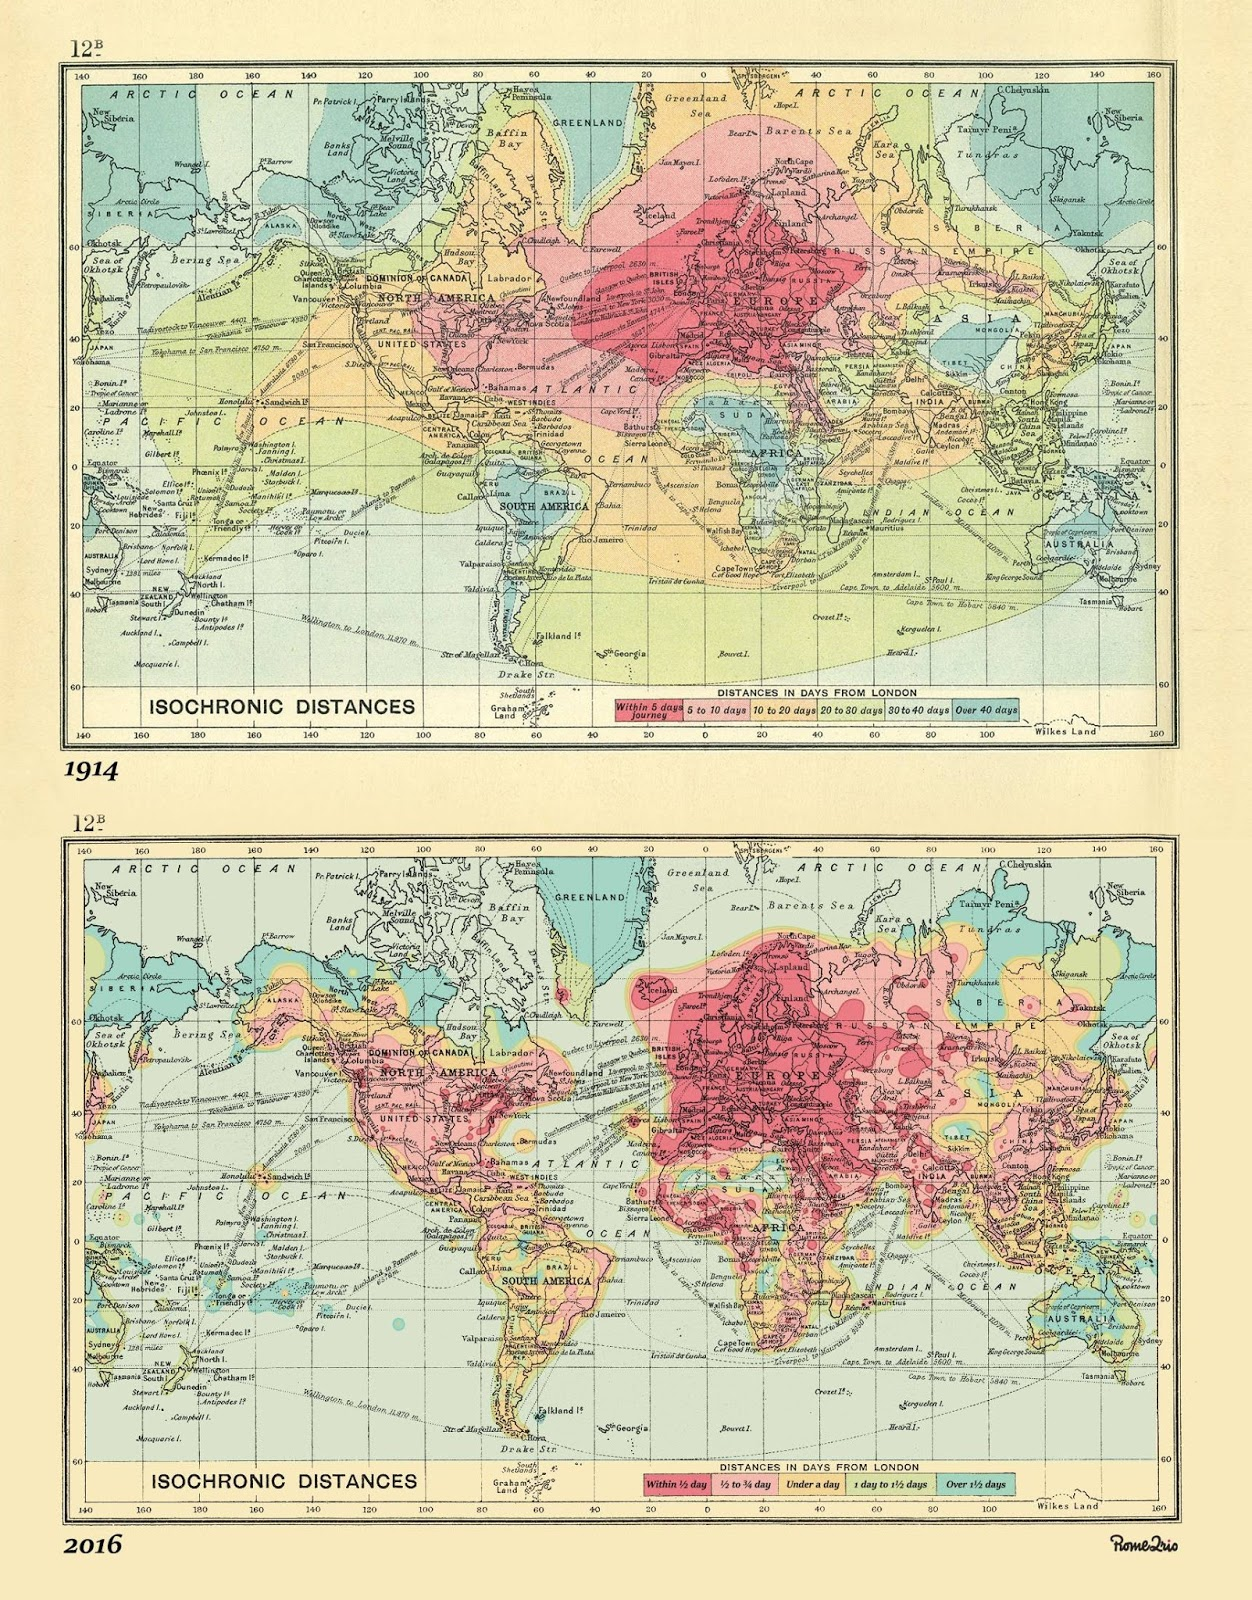 A 2016 version of the 1914 isochronic London / World travel times map